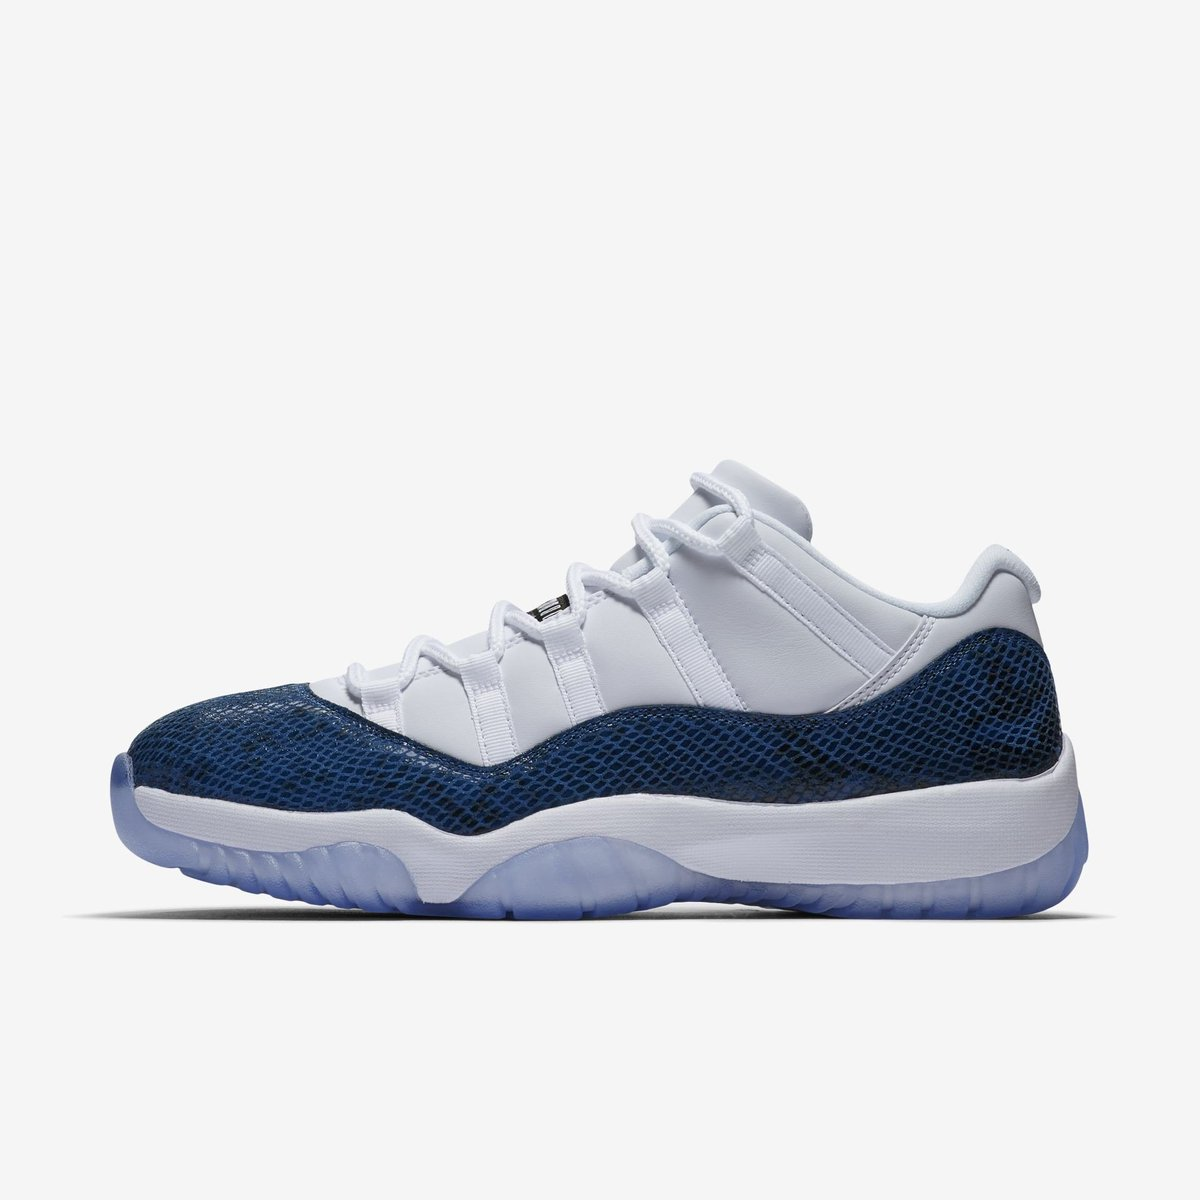 """SALE: Jordan 11 Retro Low """"Navy Snakeskin"""" last sizes $148 with FREE shipping. Use code J23MAY at checkout  Link -> https://go.j23app.com/boi"""